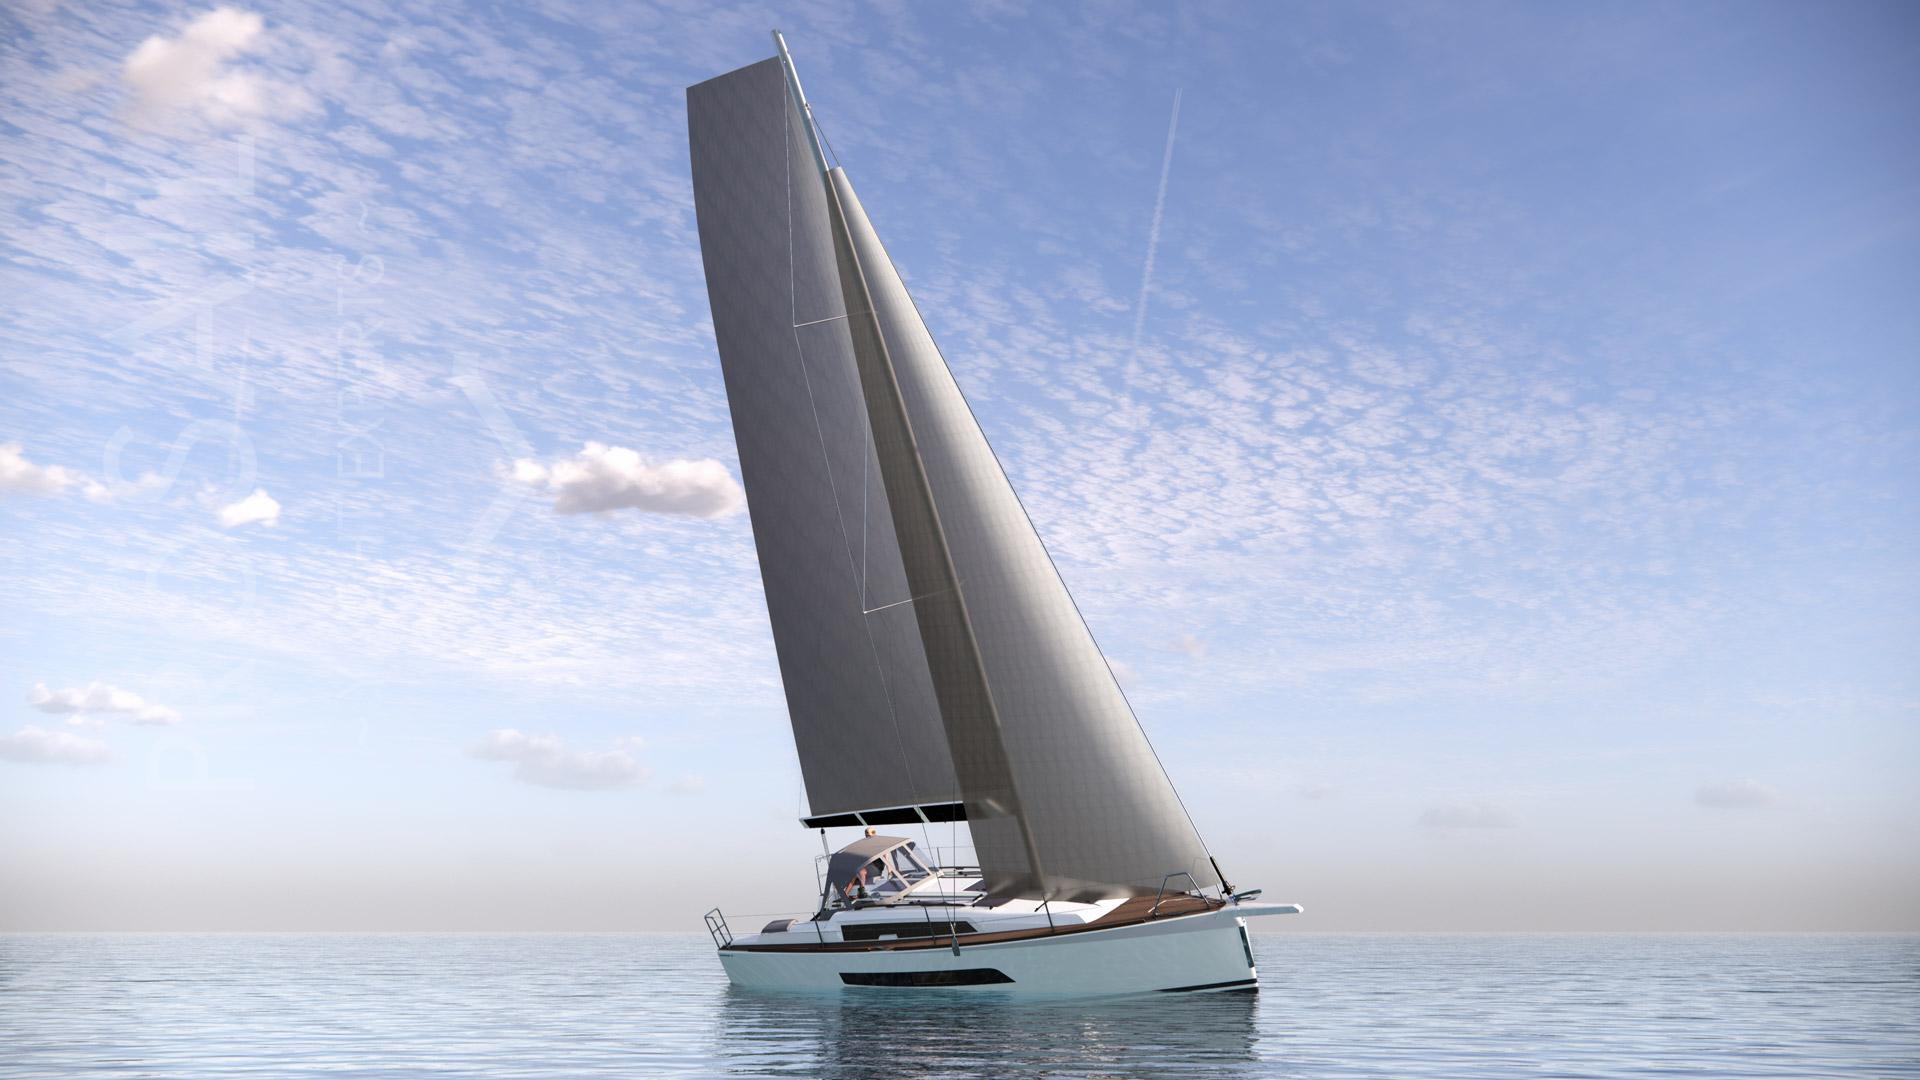 Dufour 32: an innovative 32-foot sailing boat laden with intelligent features